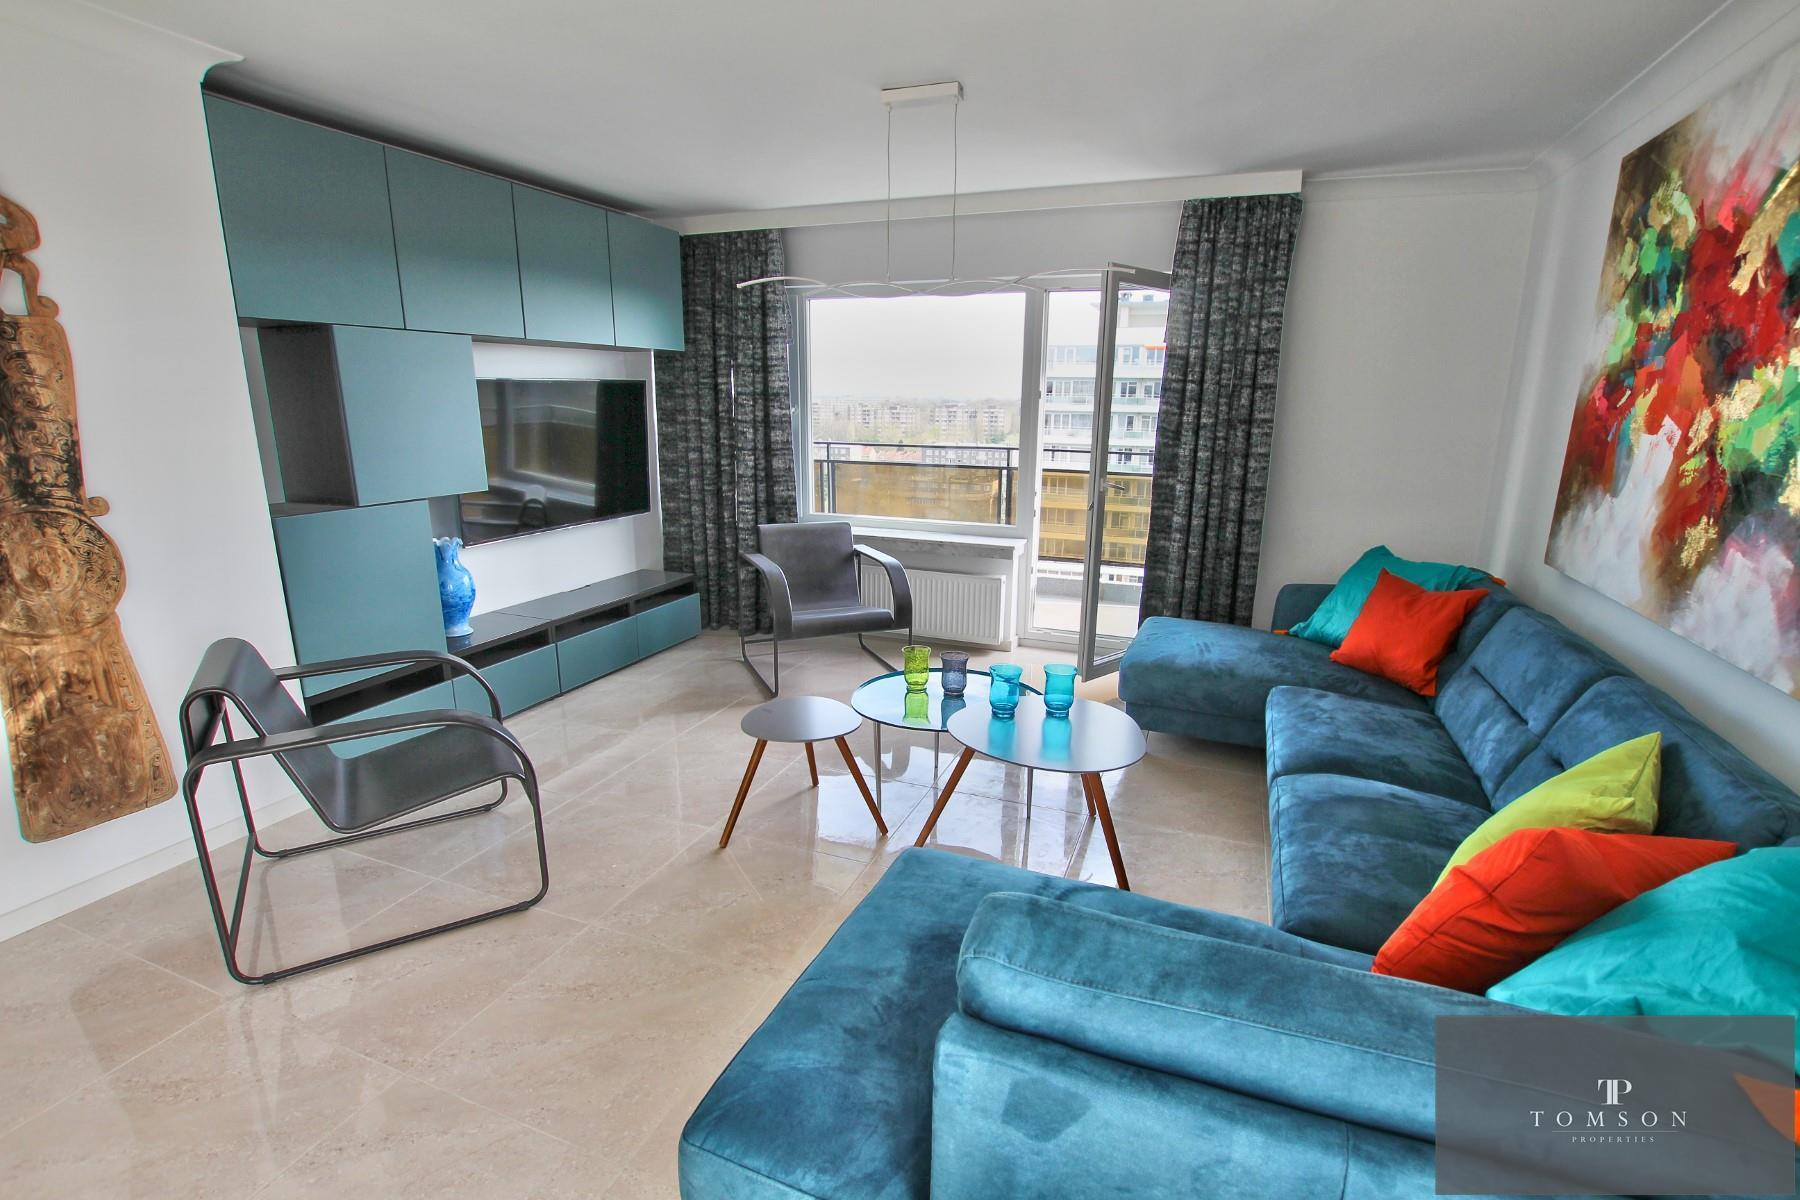 Appartement exceptionnel - Evere - #4530514-5